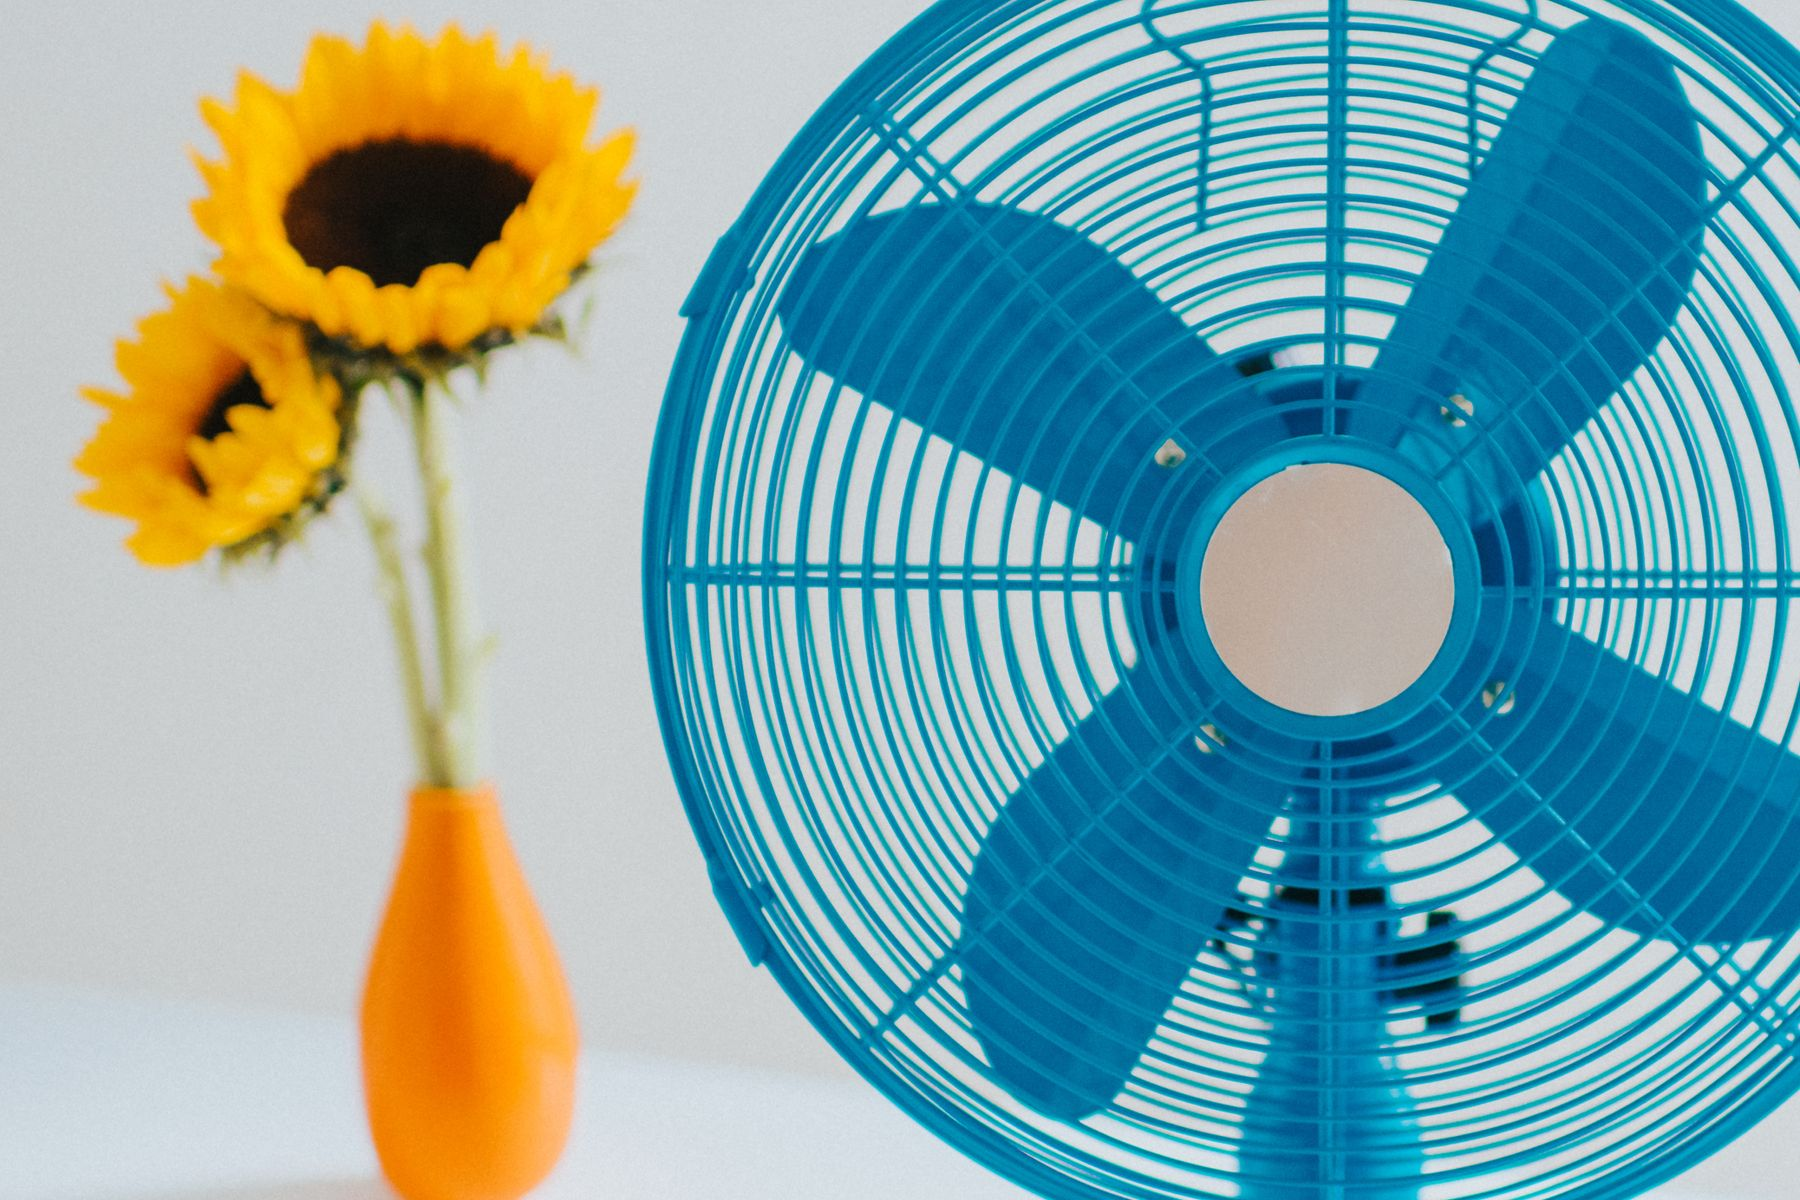 A blue fan to help get rid of musty smells in the home with sunflowers in the background